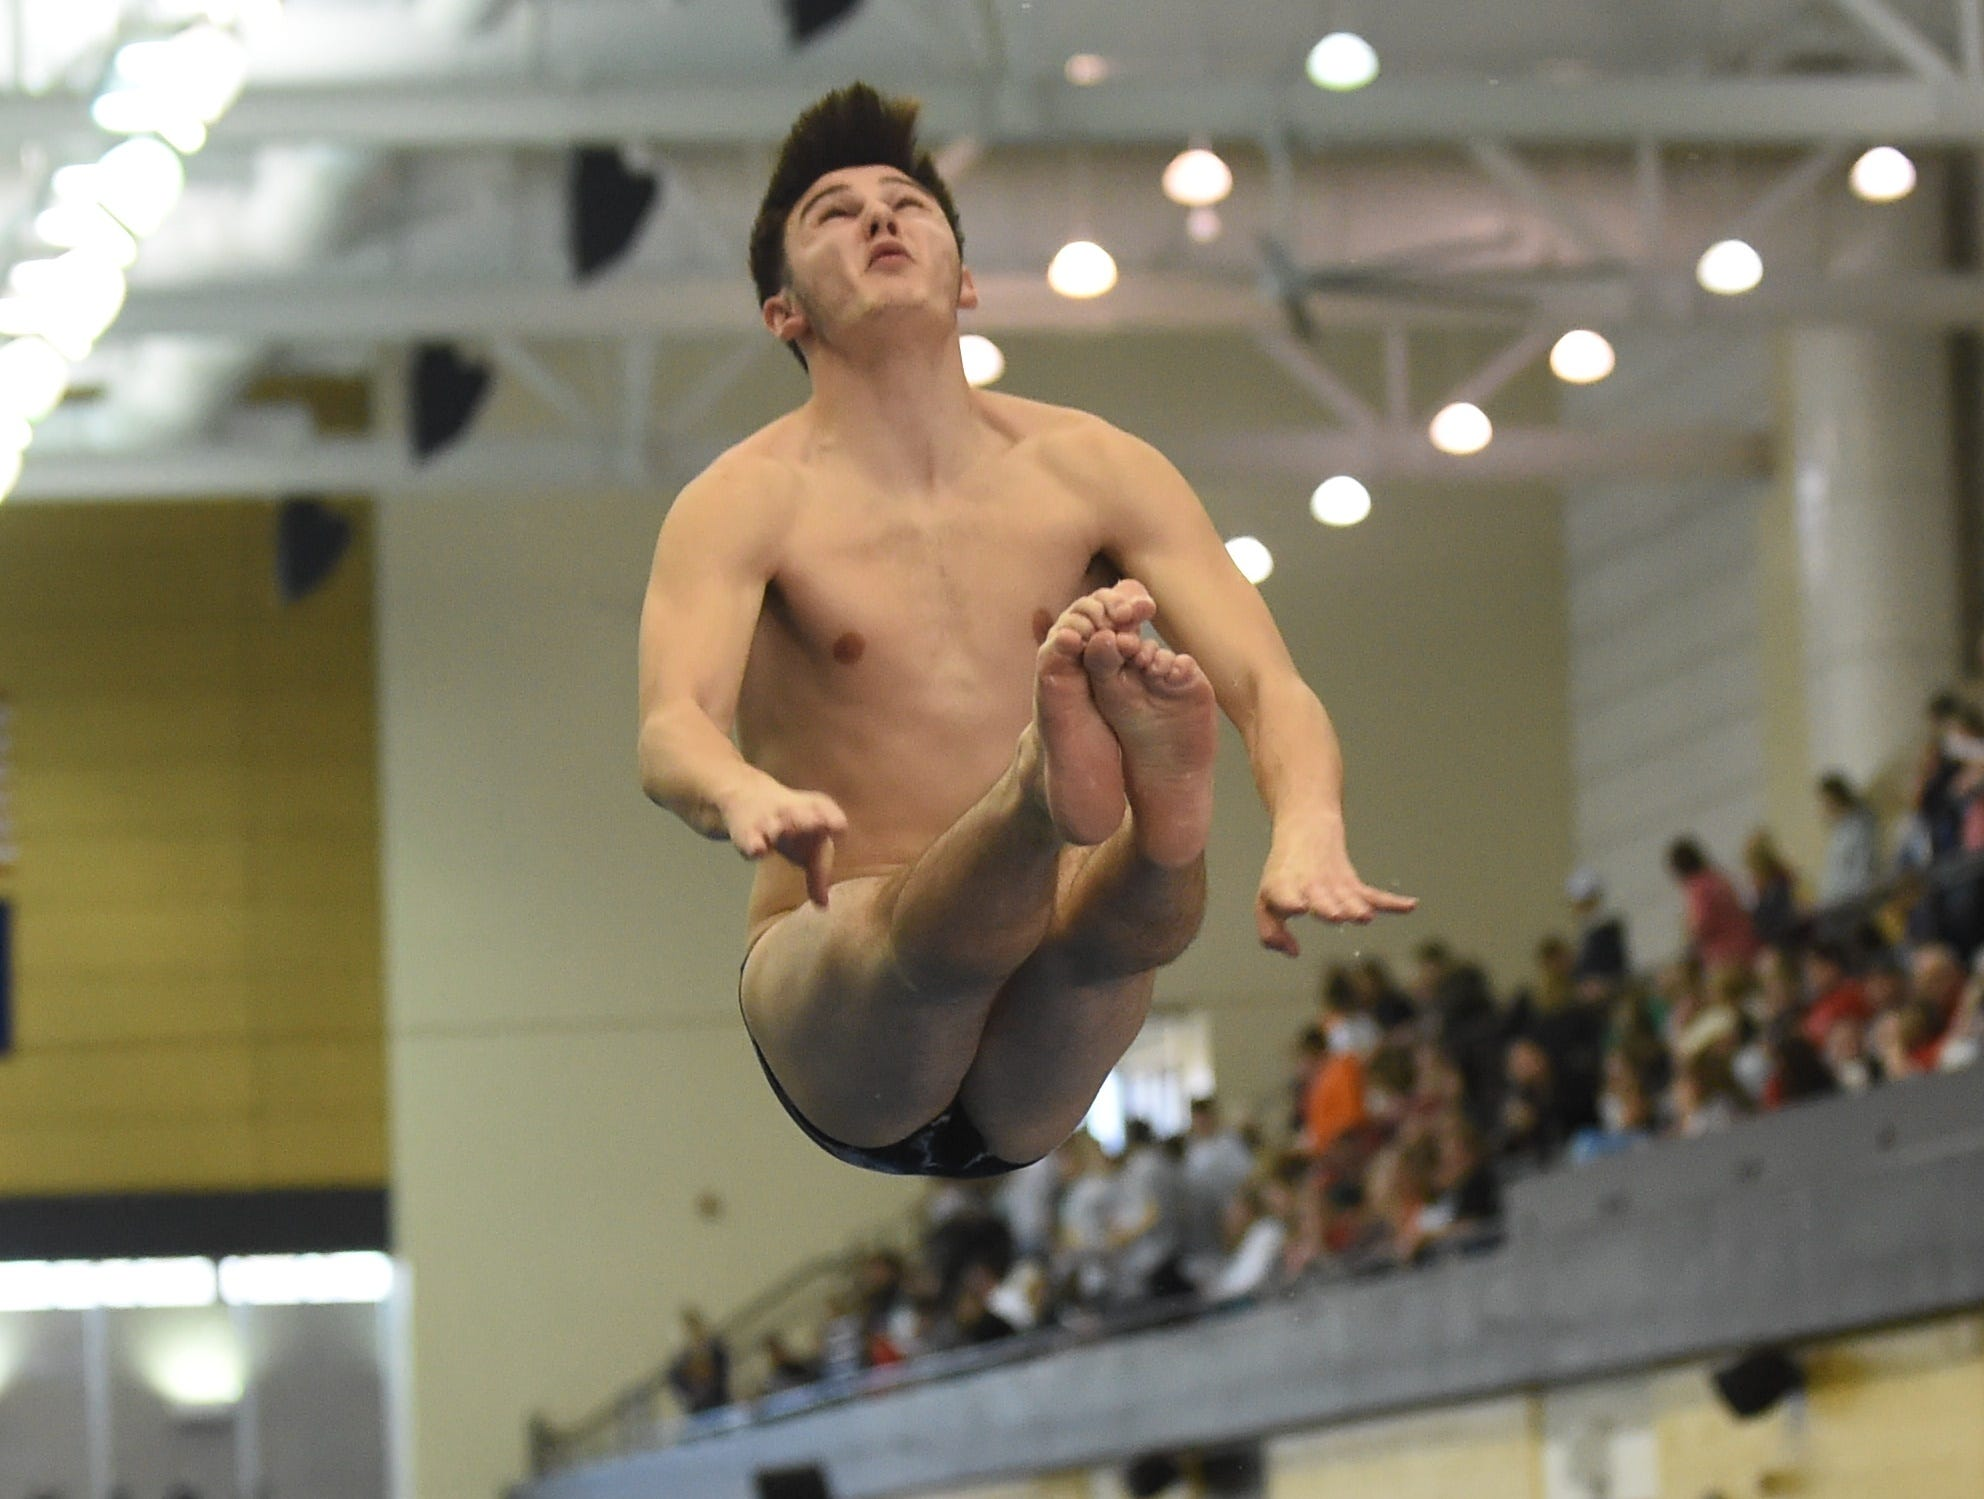 Images from Saturday's North Central Conference Swimming and Diving Championships at Purdue. Clayton Vandervate.